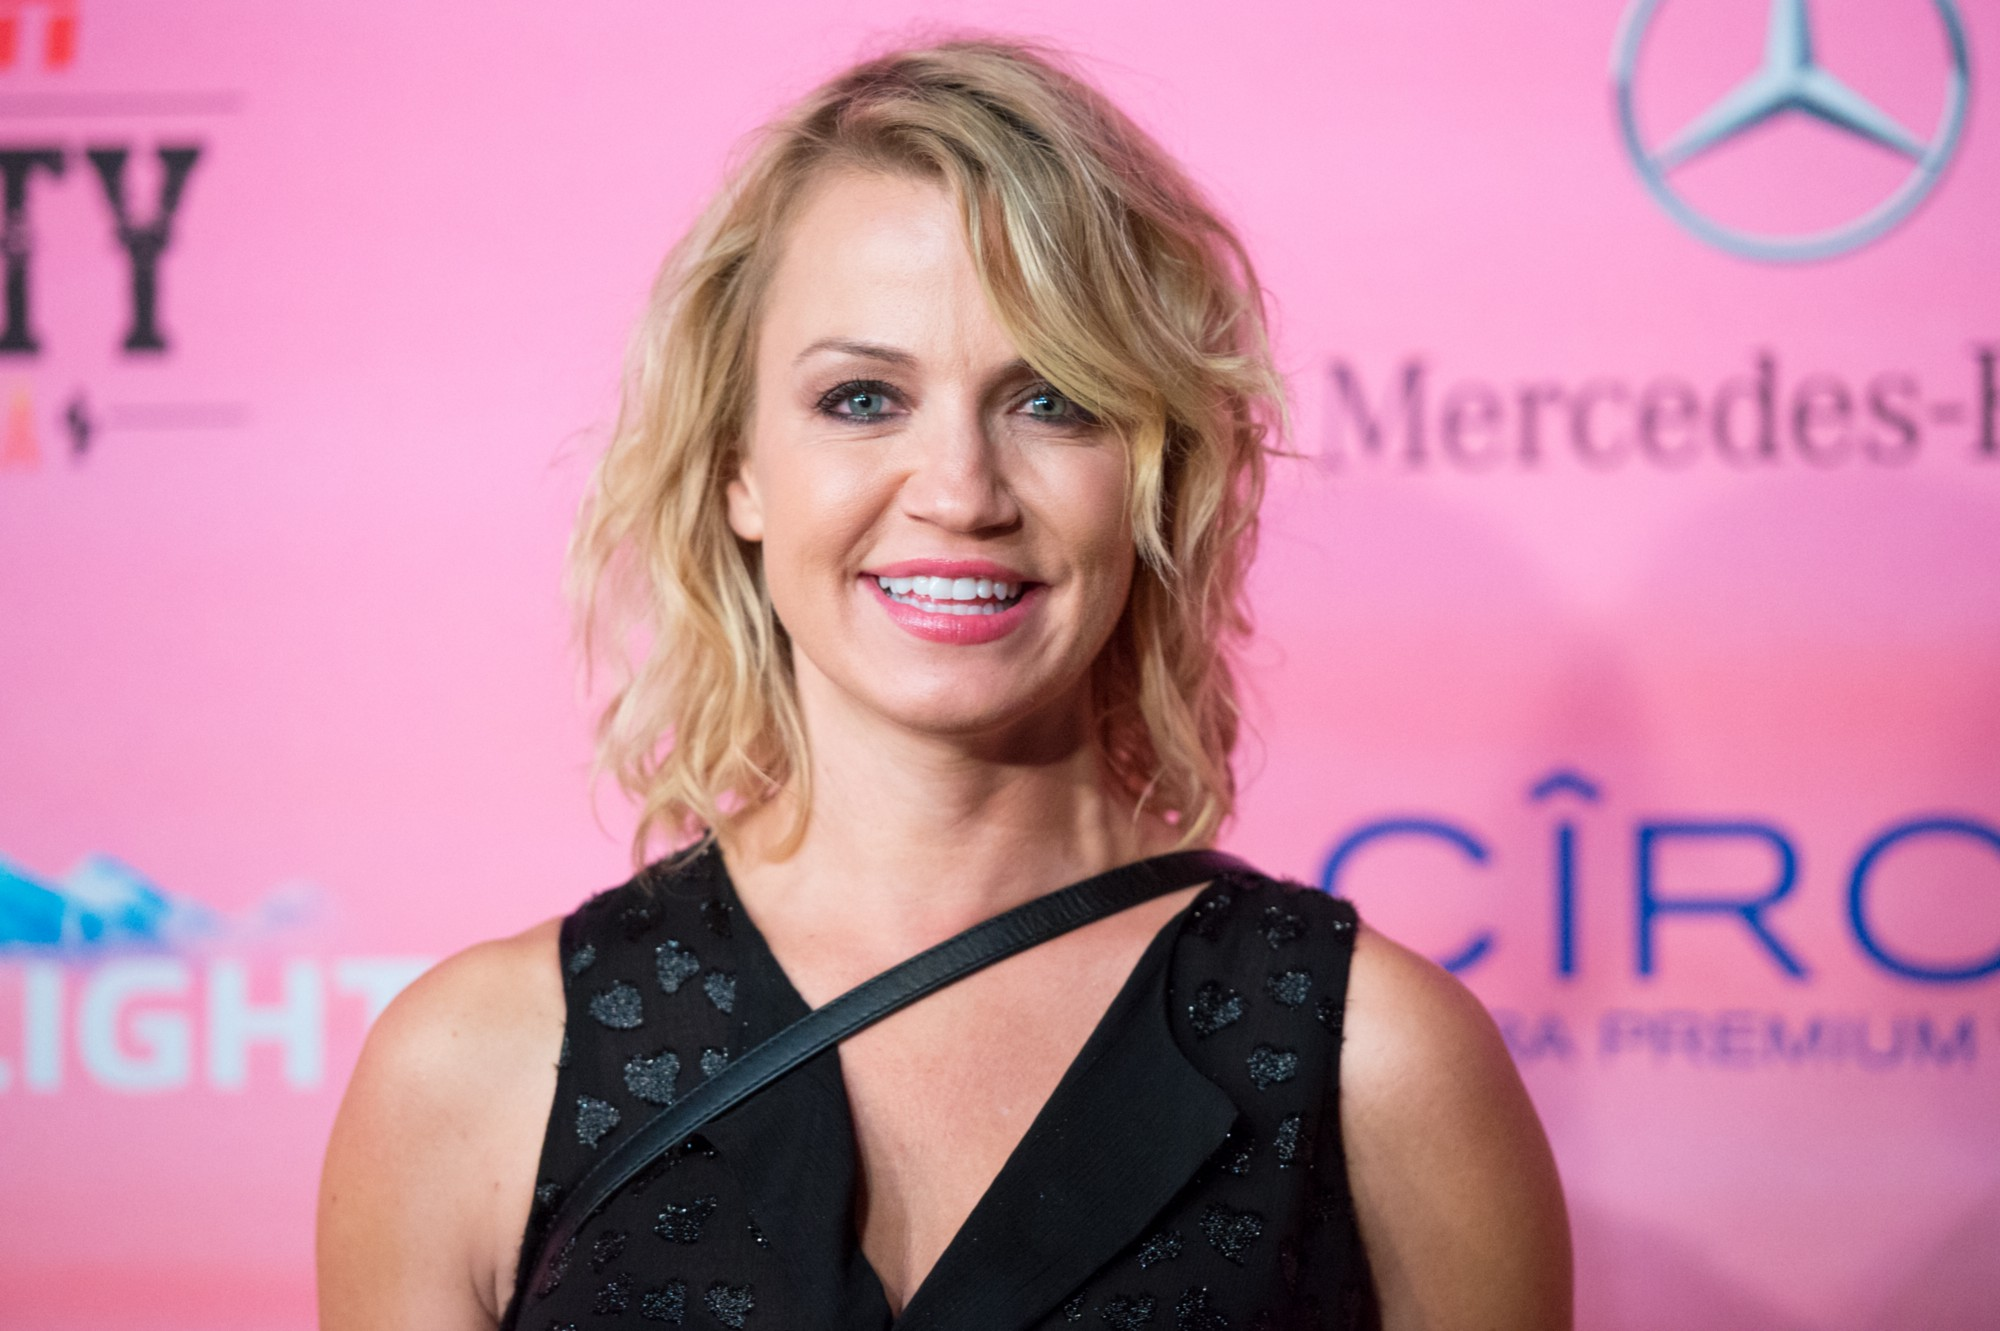 Sports reporter and ESPN host Michelle Beadle will be featured in the Sharknado 3 movie! The blonde begged on social media to be cast in the upcoming movie